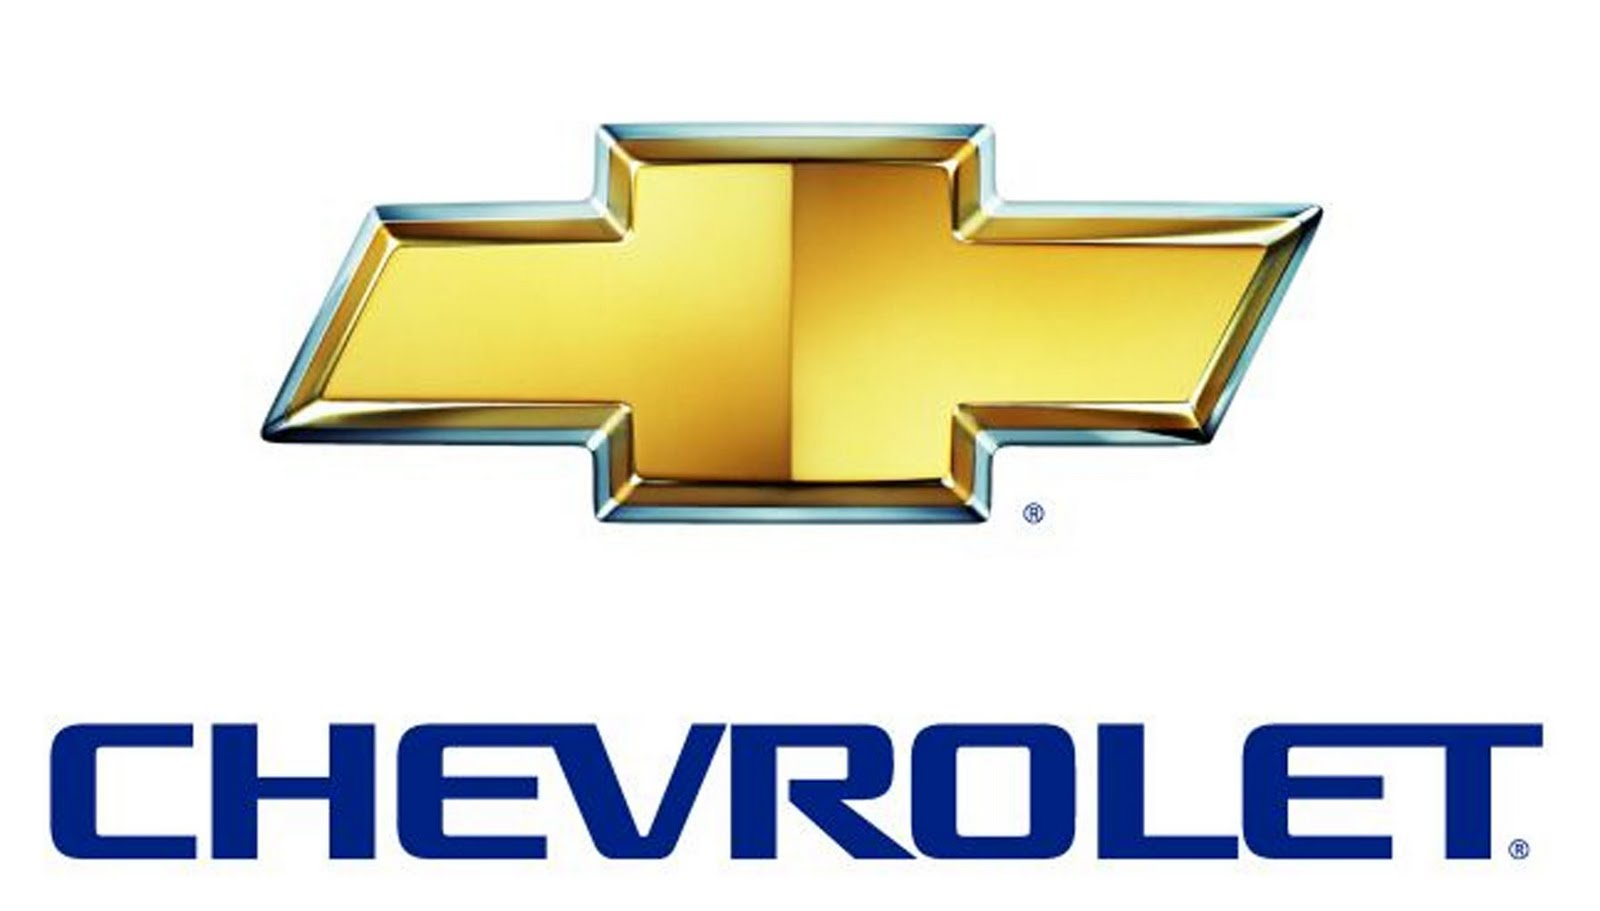 Chevrolet | The history and development of the Chevrolet | The